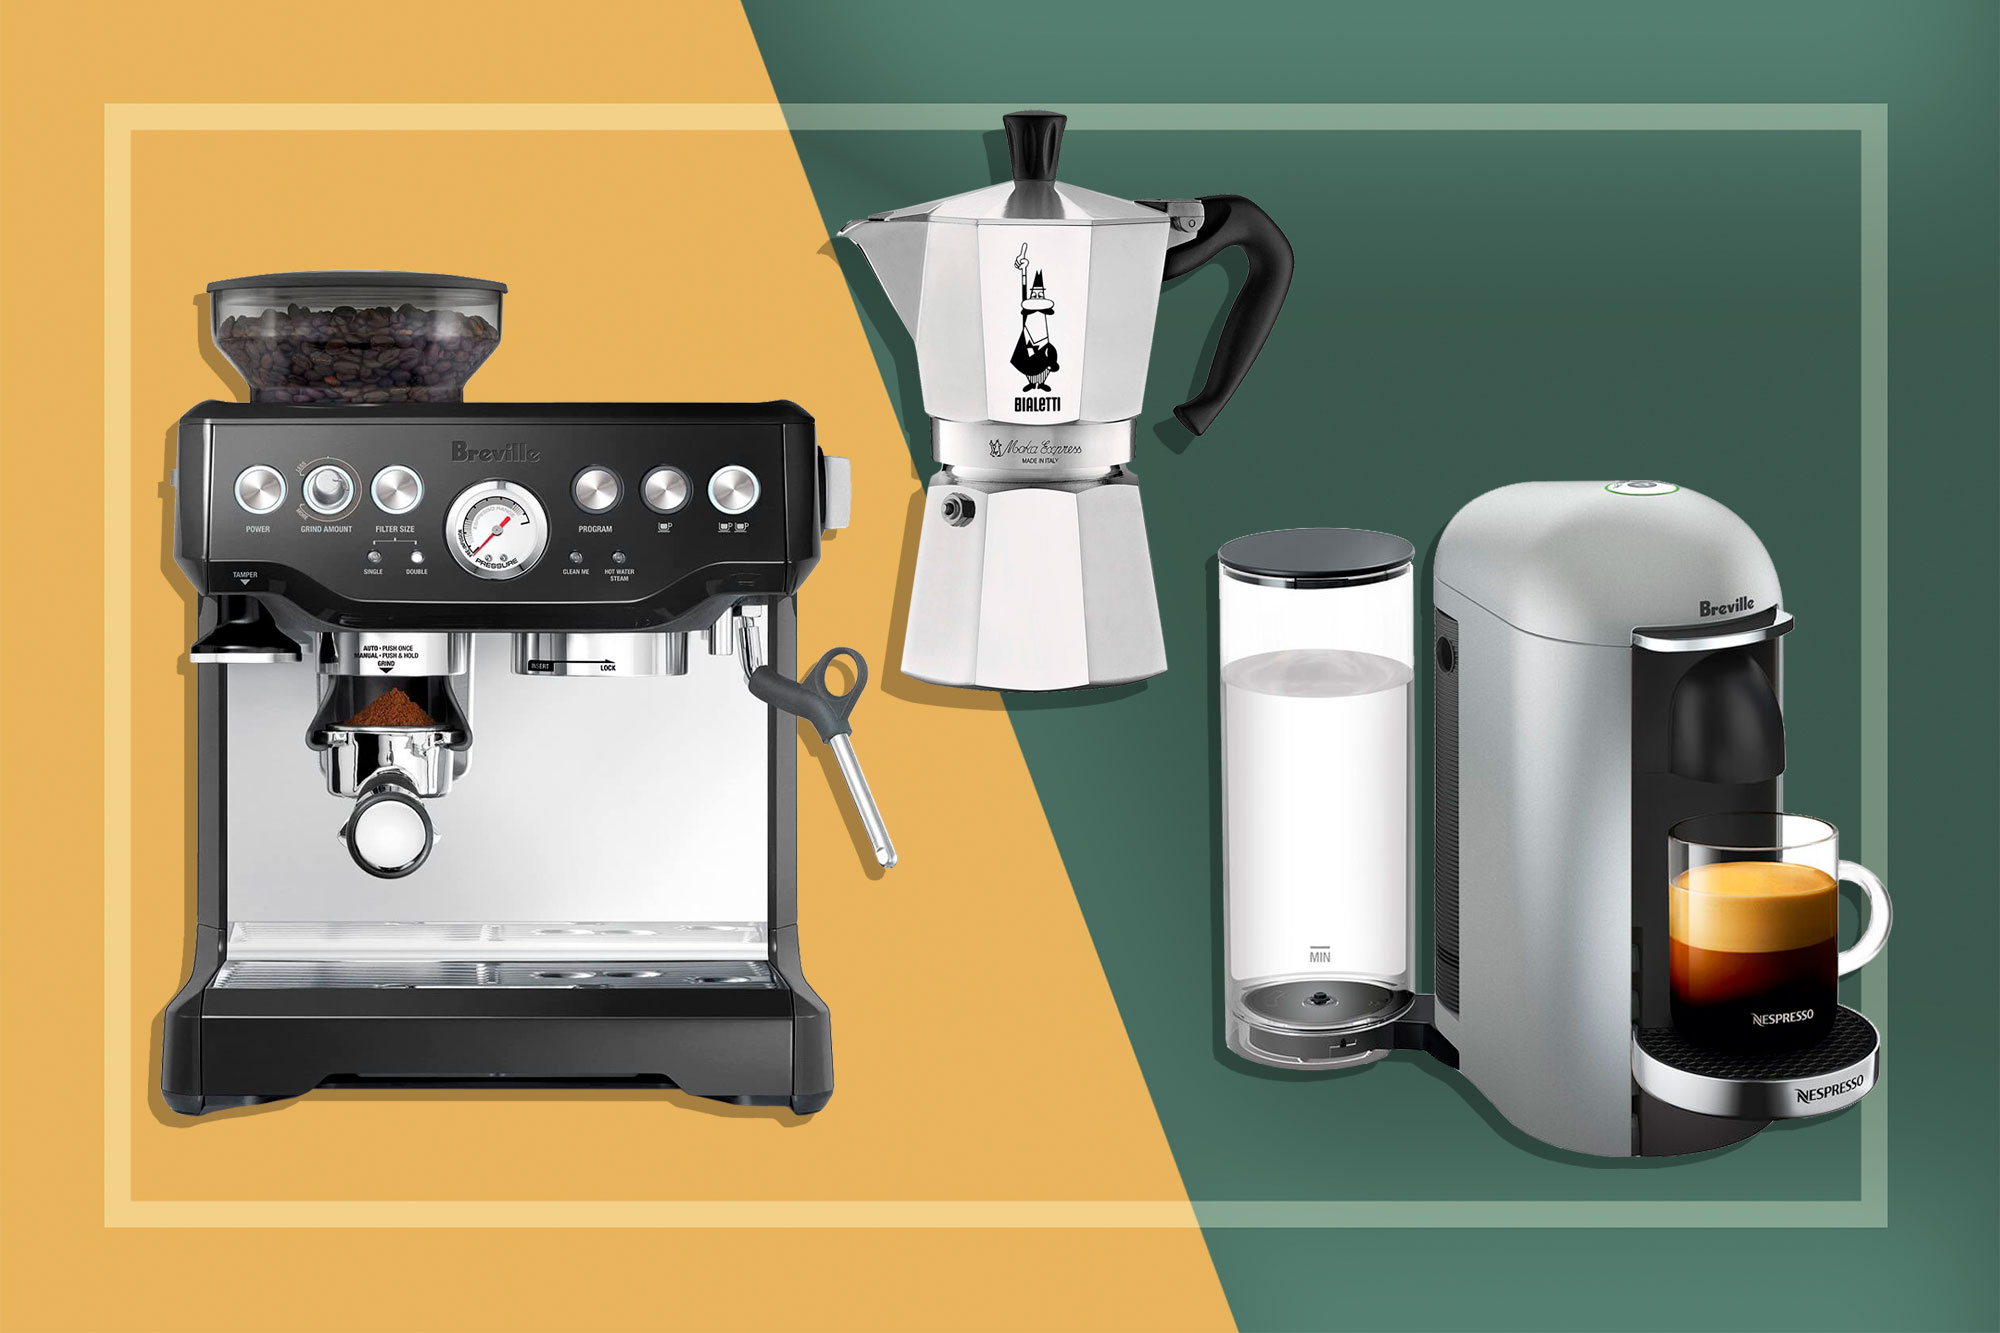 Breville, Bialetti, and Nespresso Espresso Makers